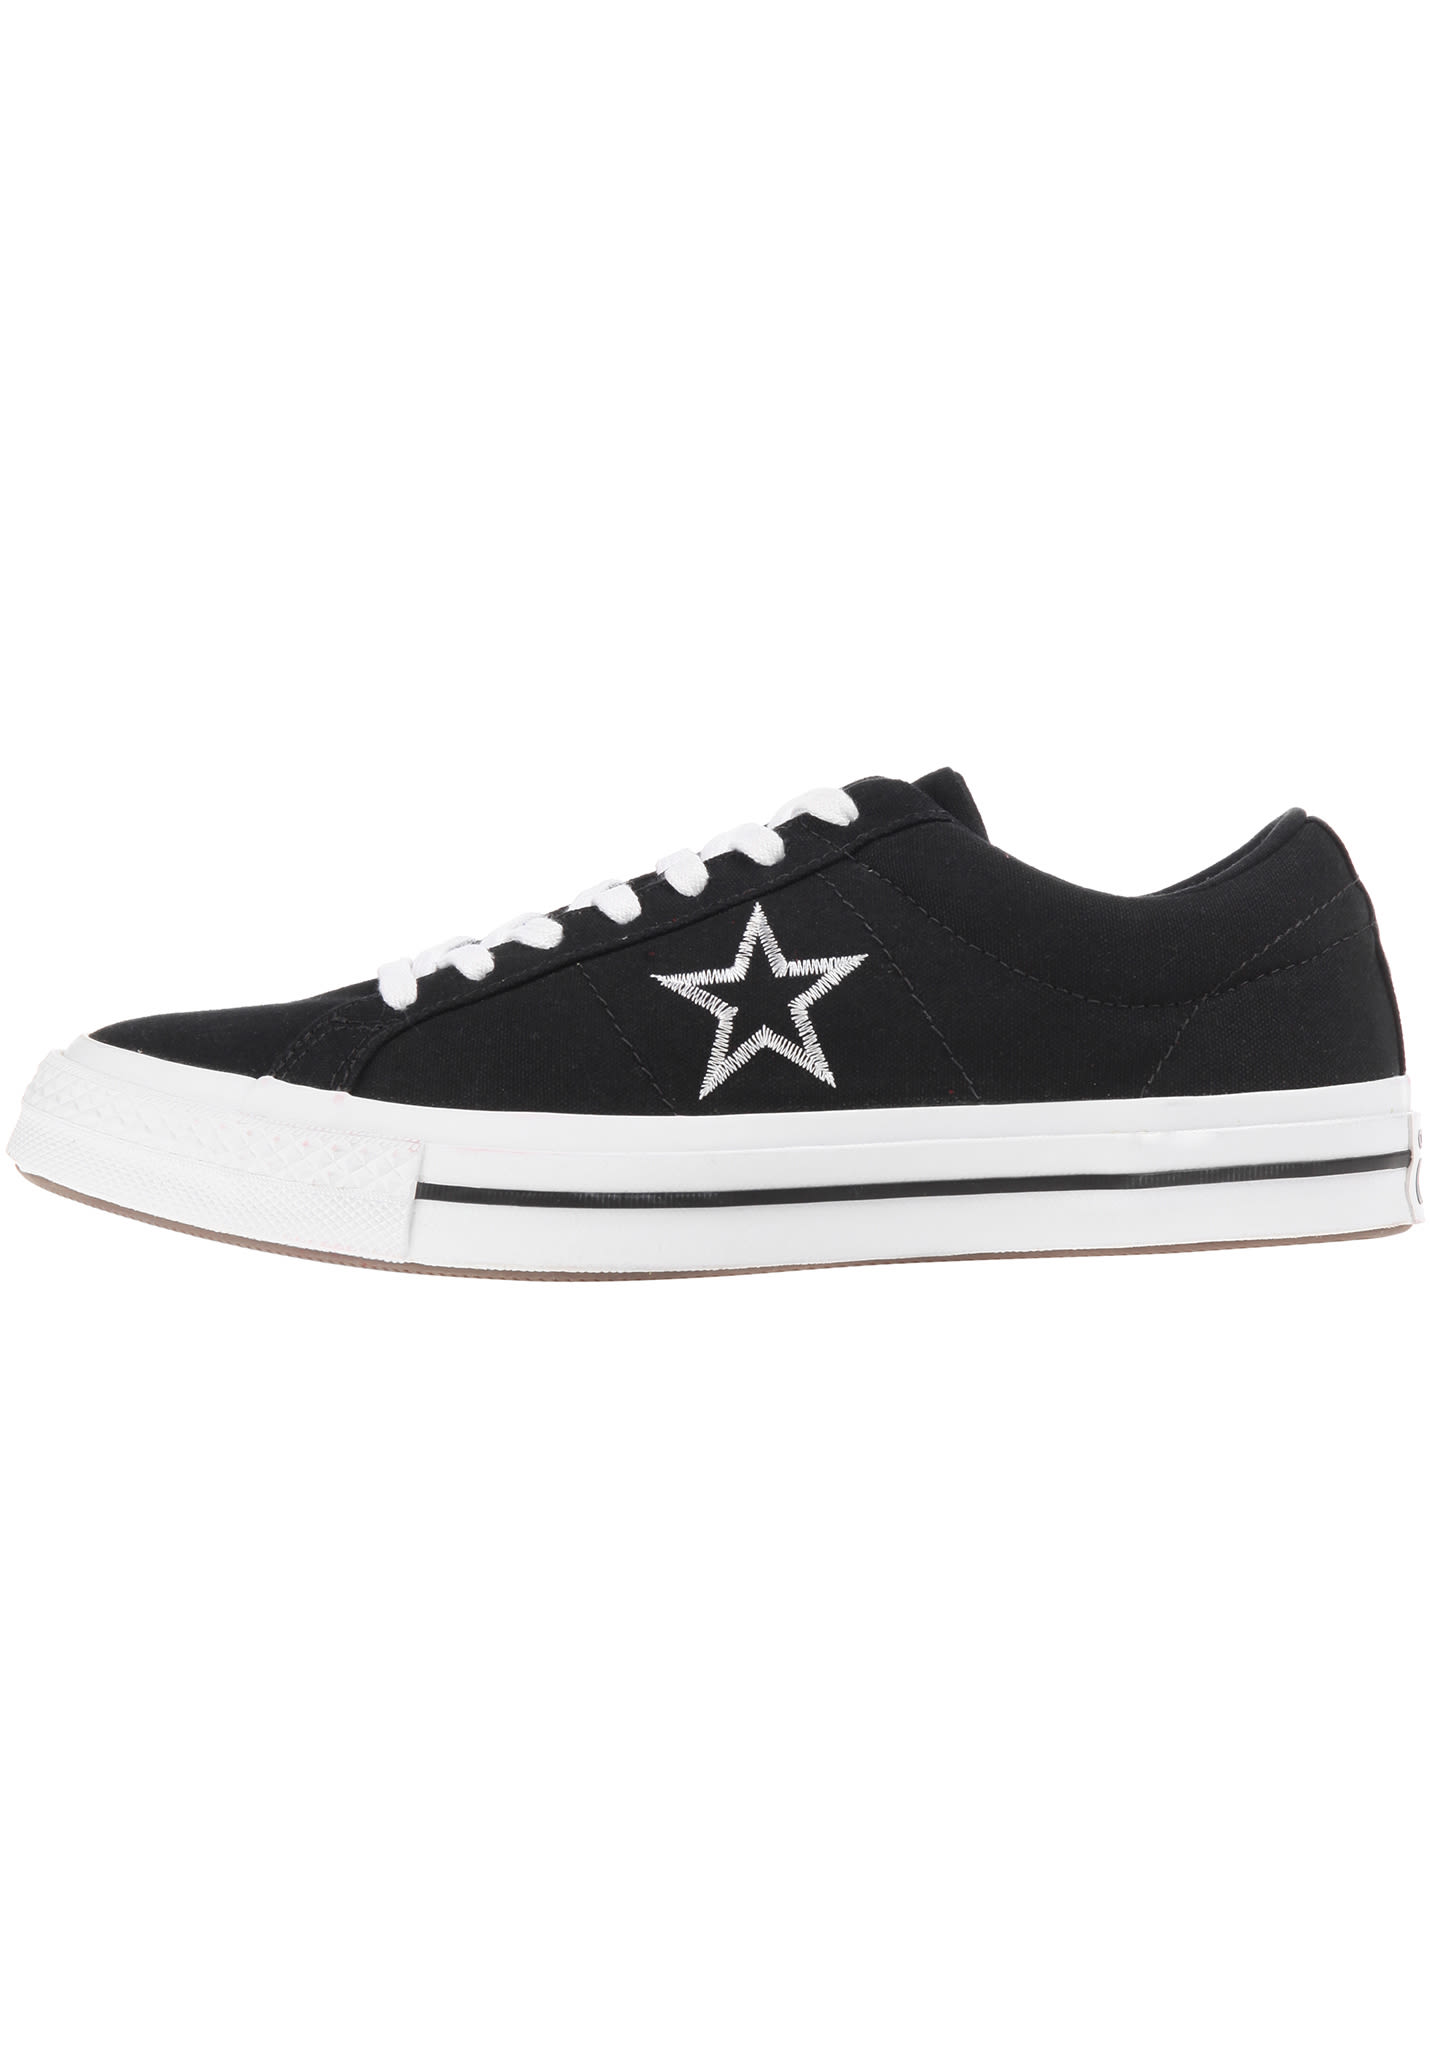 Converse One Star Ox - Sneakers - Black - Planet Sports 679133ba4